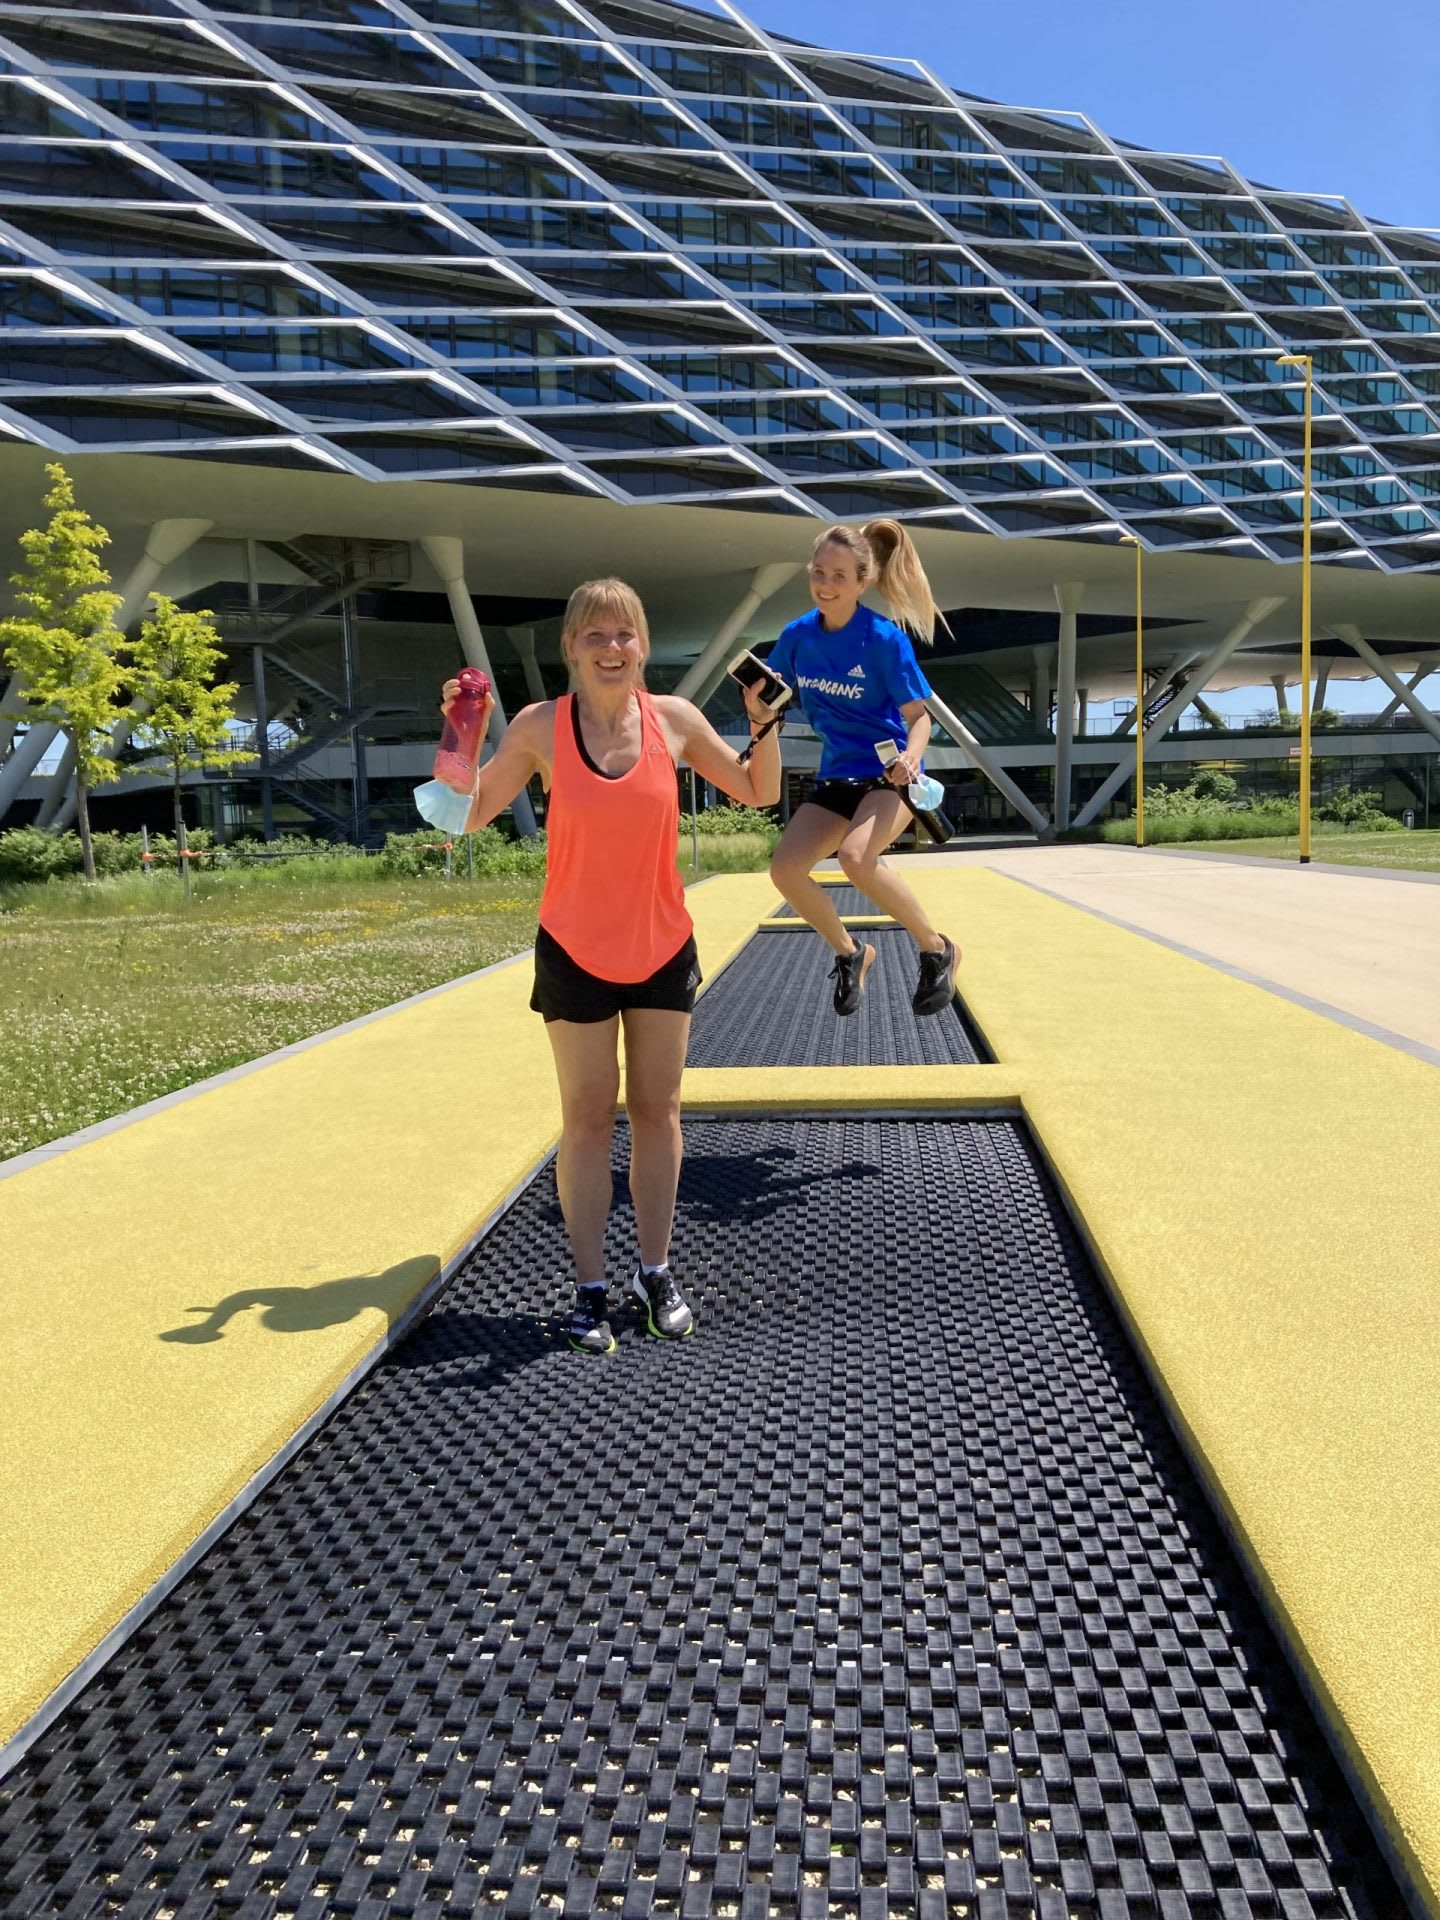 Women jumping on trampoline in front of a large building, adidas, HQ, headquarters, Herzogenaurach, Germany, sports, company